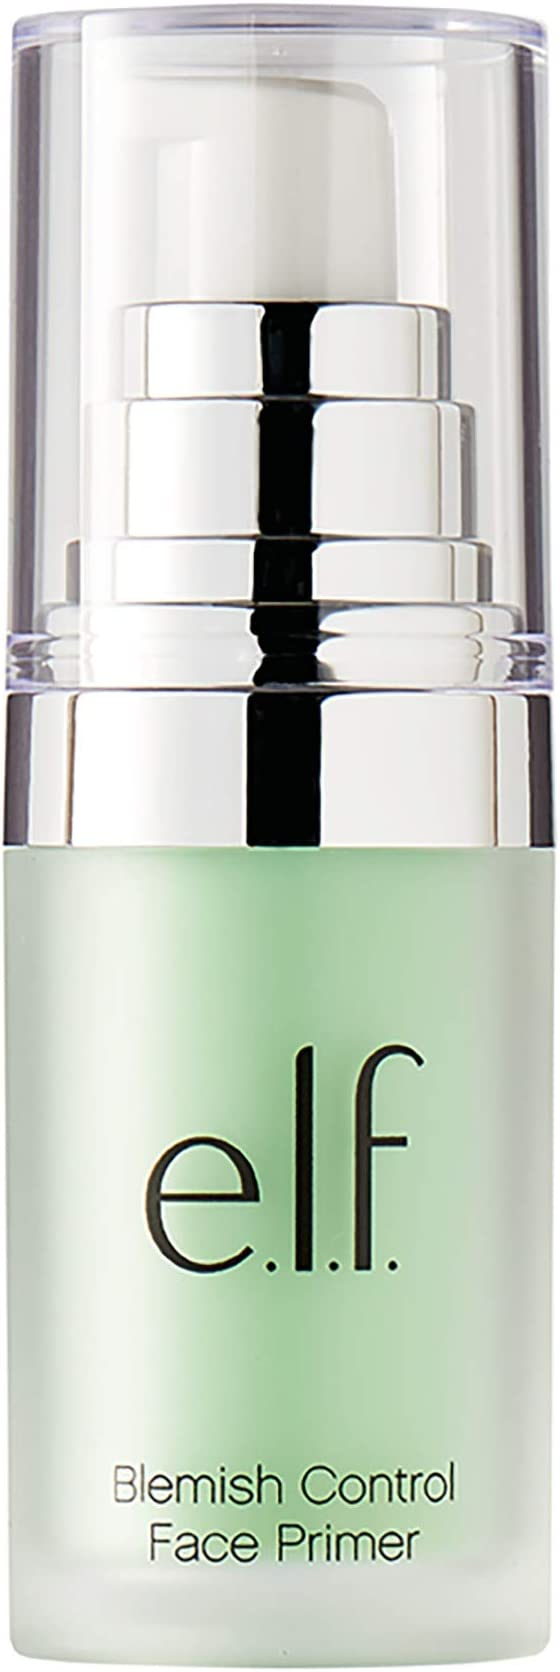 Blemish Control Face Primer, Small, Long Lasting, Skin Perfecting, Controls Breakouts and Blemishes, Matte Finish, Infused with Salicylic Acid, Vitamin E & Tea Tree 14ml